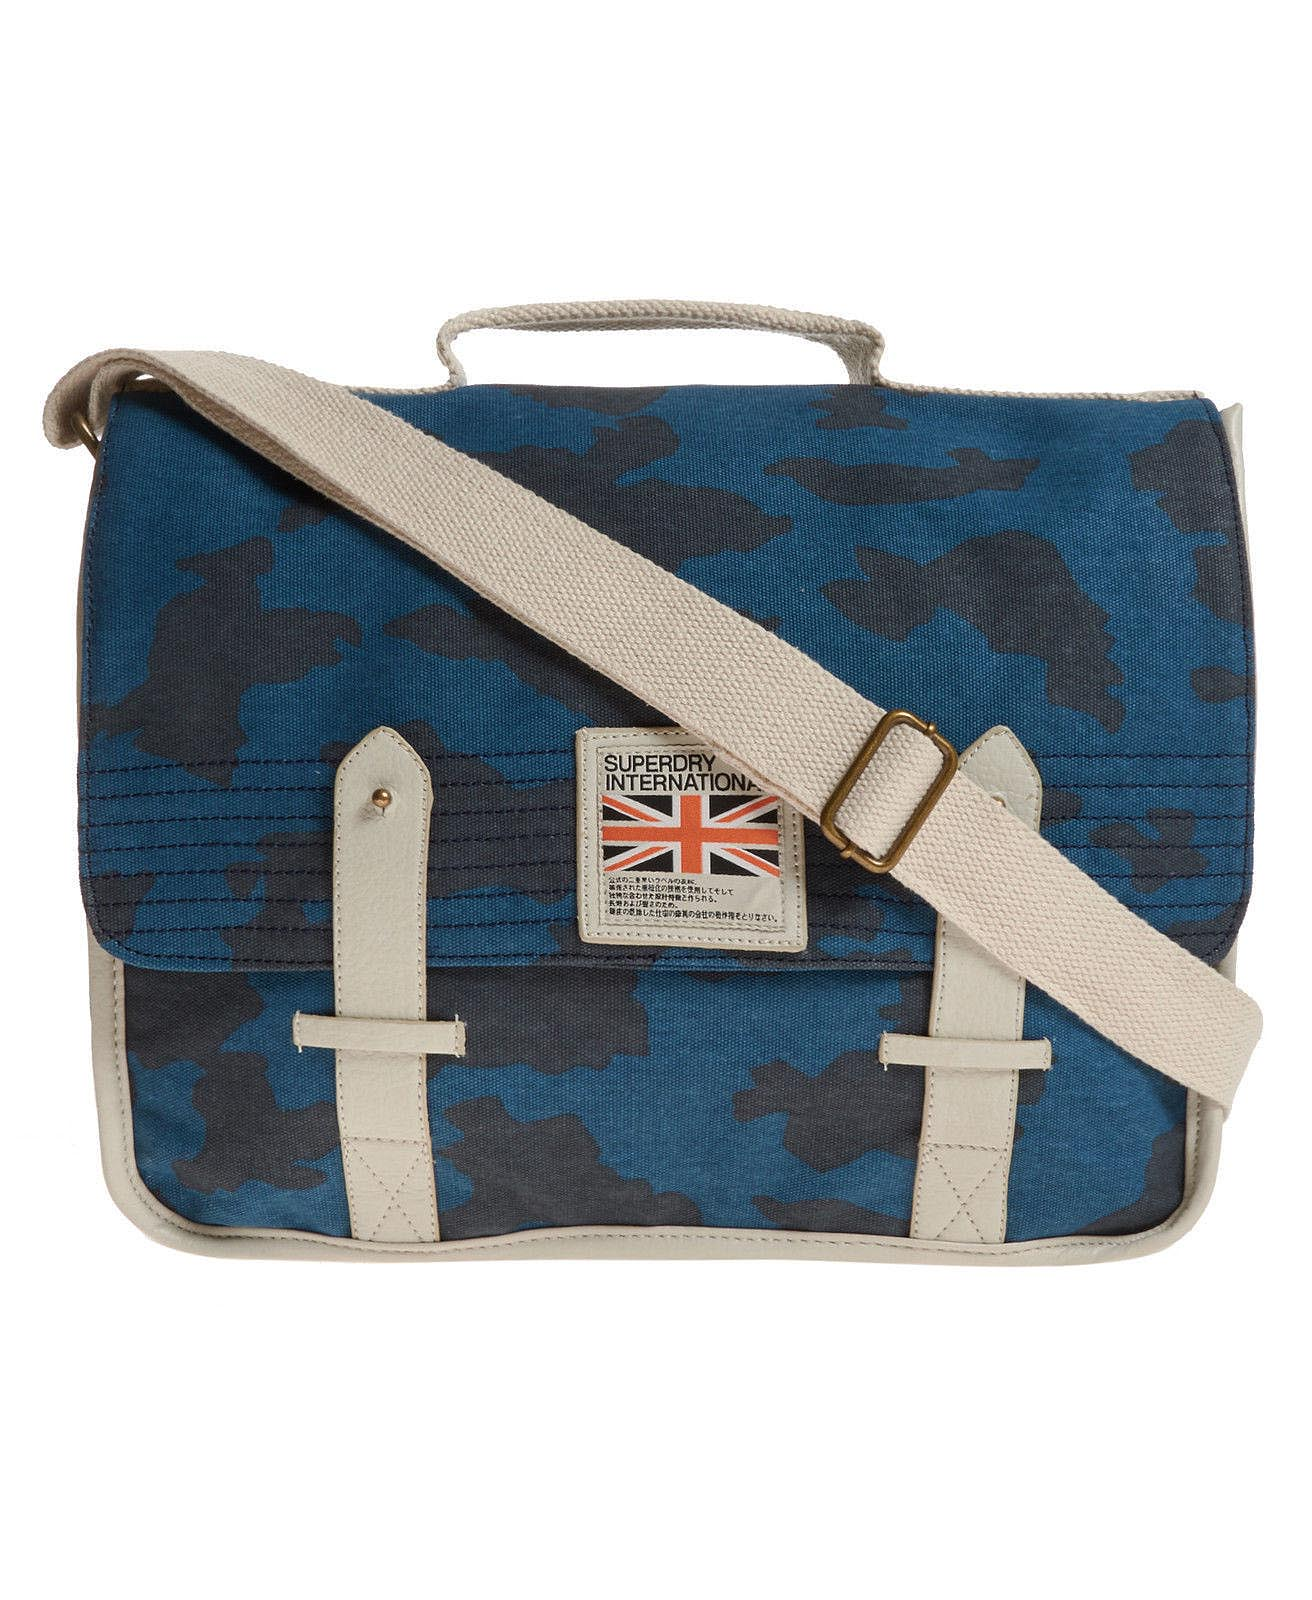 superdry-bags-on-sale-12